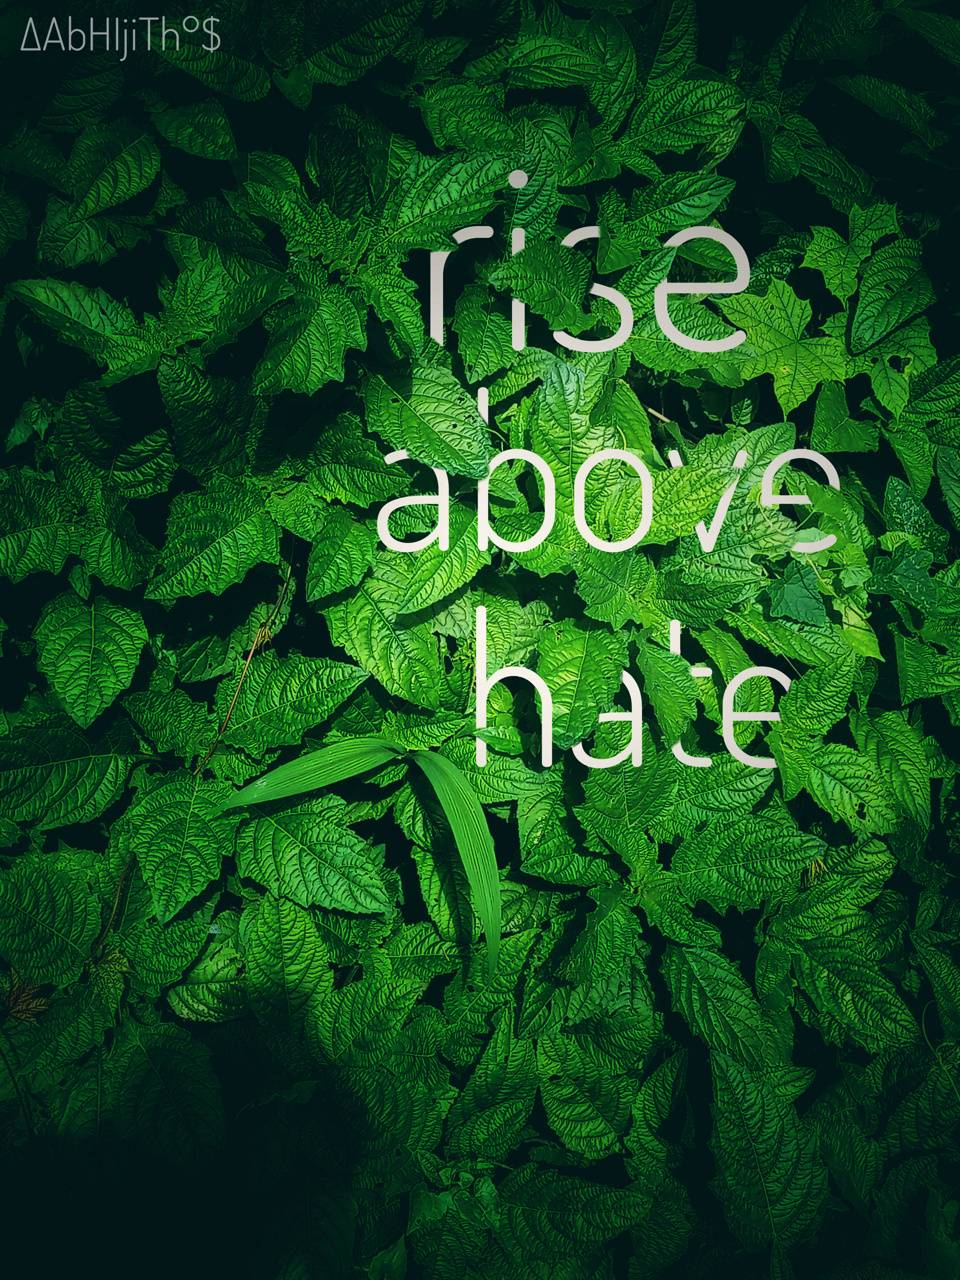 The rise above hate